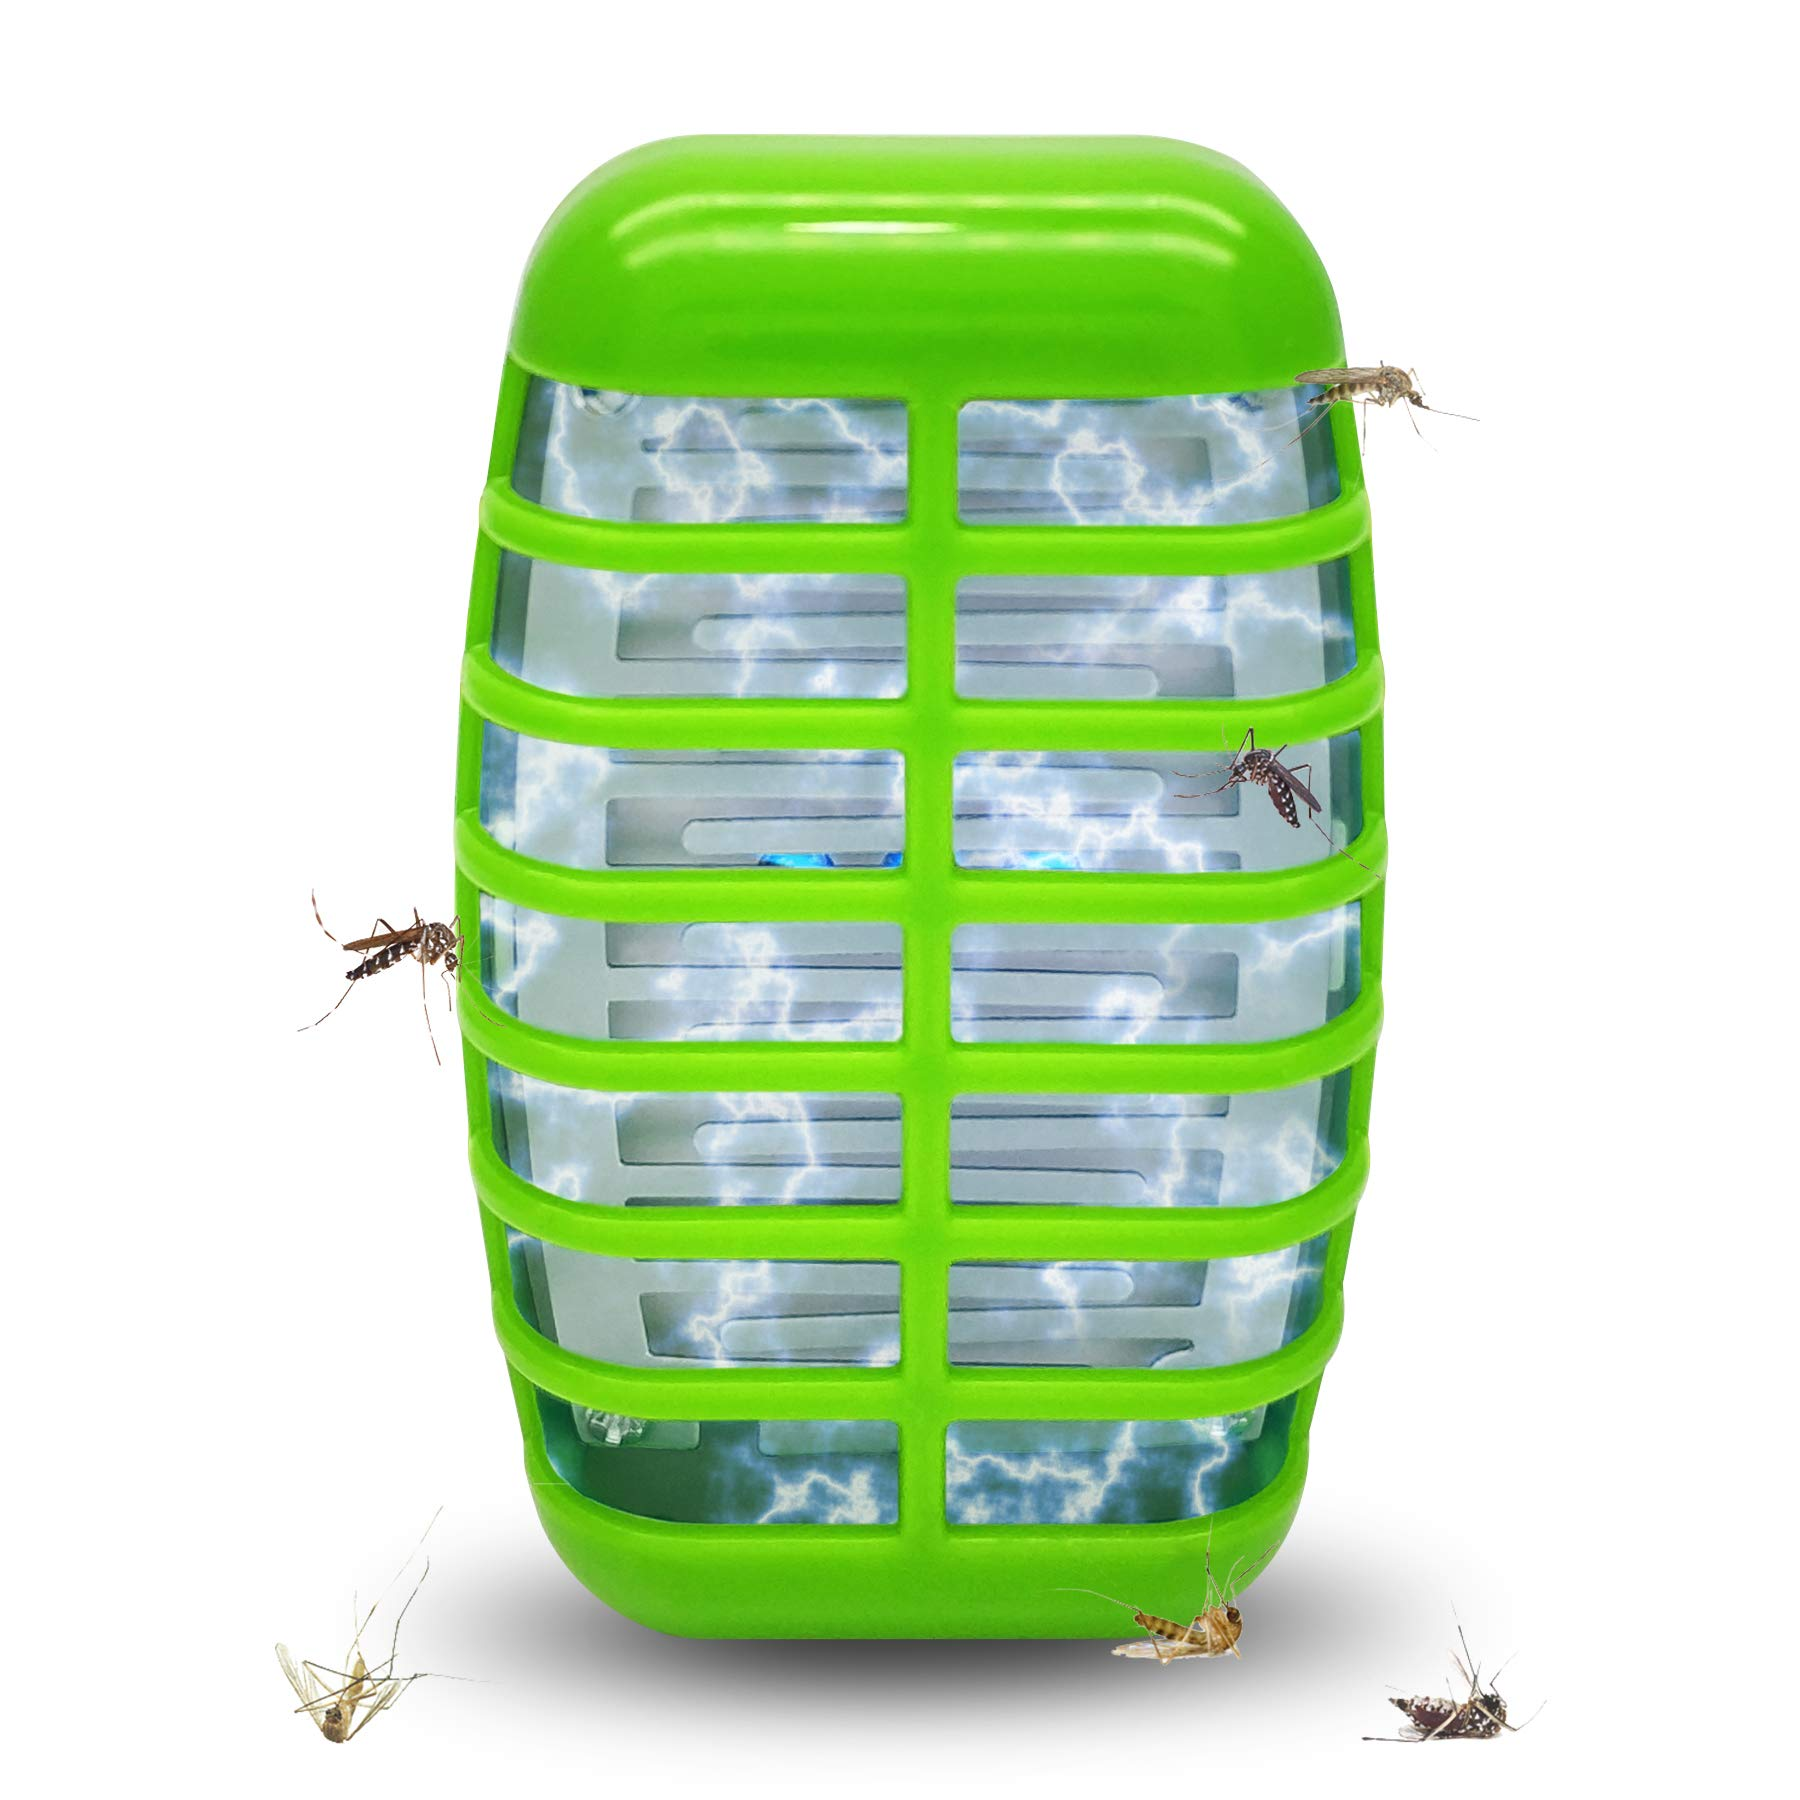 Eliminates Gnats Fruit Flies/& Flying Pests Mosquito Killer Lamp Pest Repellent 2020 Upgraded Plug-in Electronic Insect Killer Night Light,